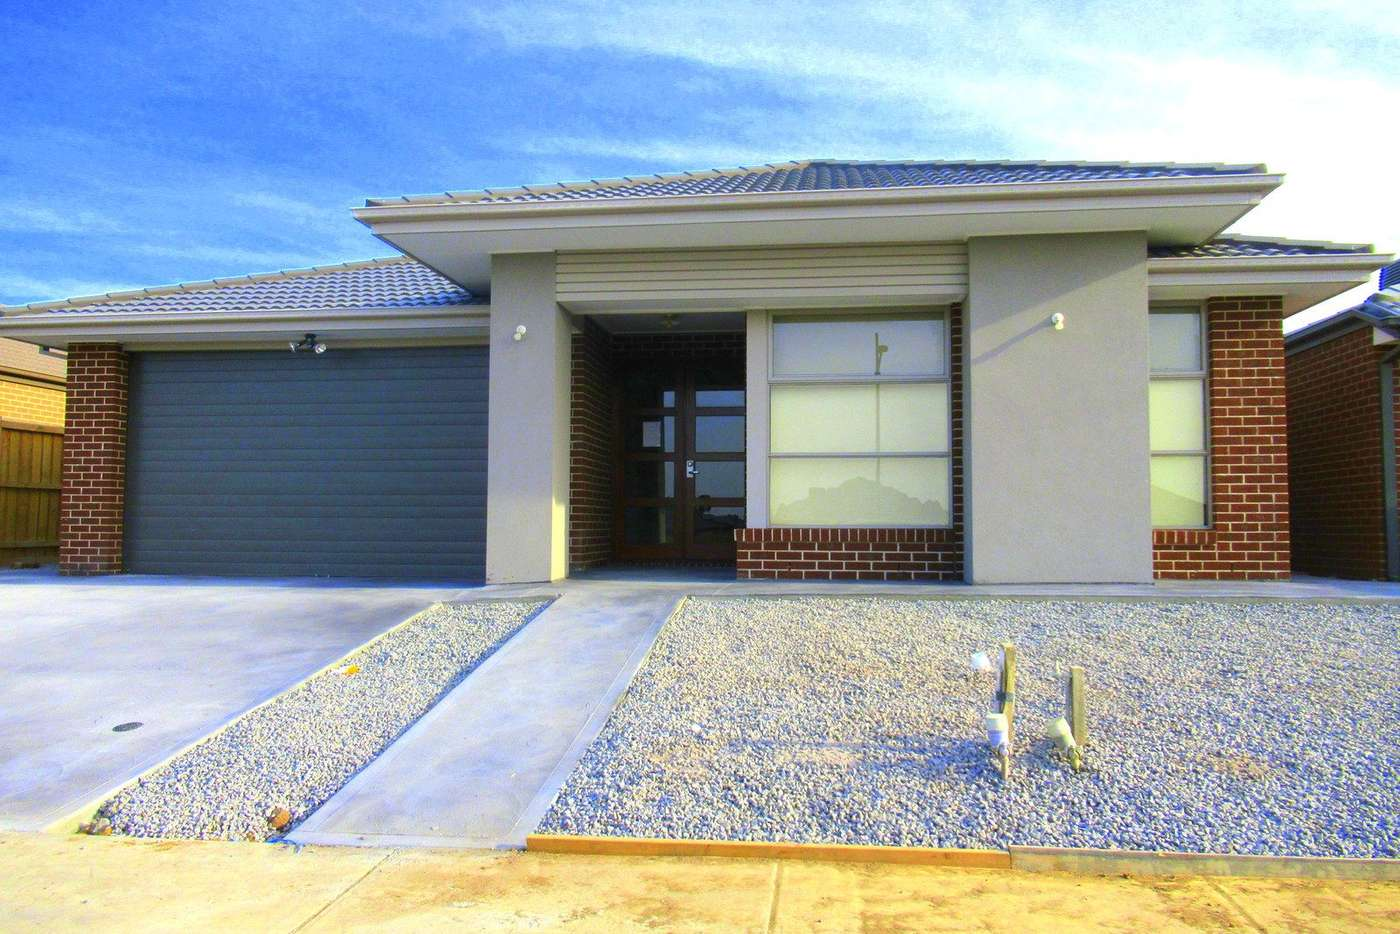 Main view of Homely house listing, 7 Inkerman Crescent, Mickleham VIC 3064